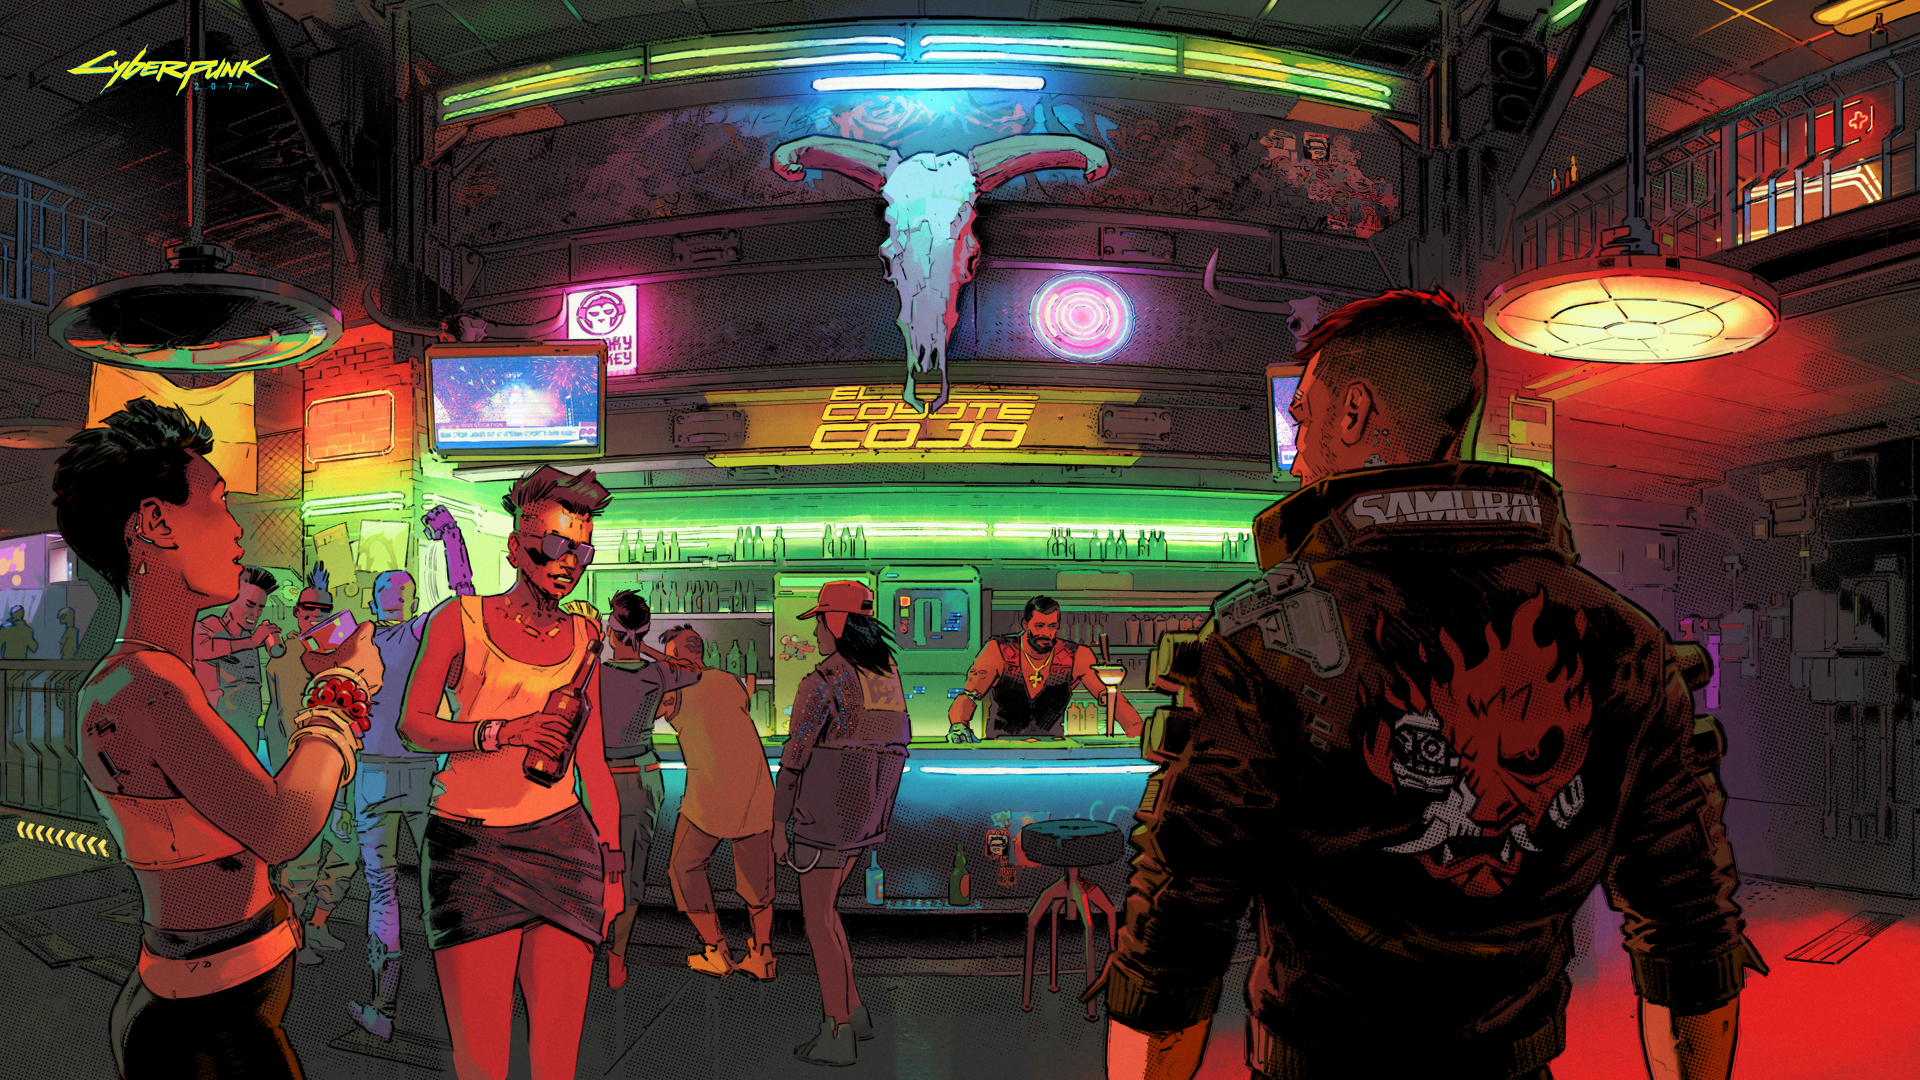 Image from video game Cyberpunk 2077, courtesy of CD Projekt